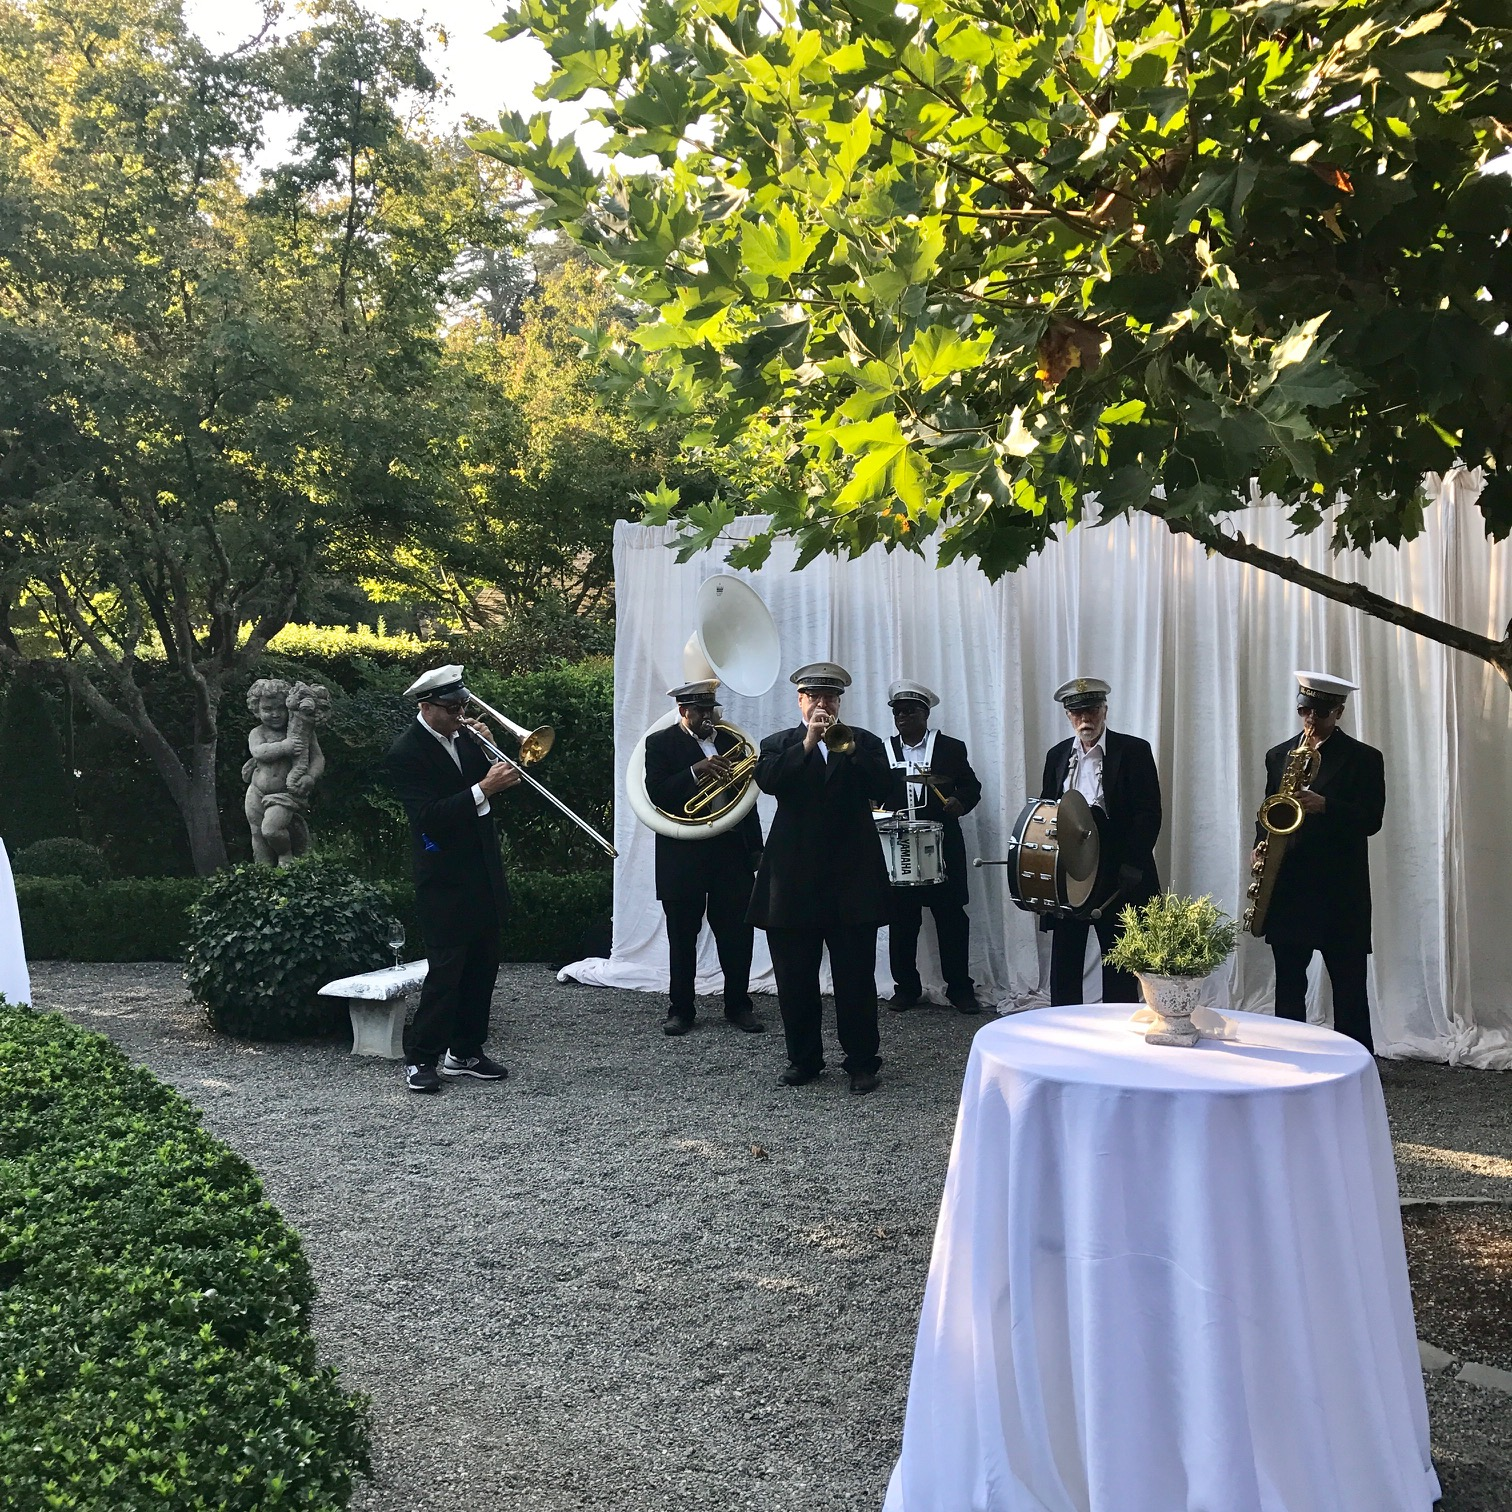 The New Orleans band welcomed guests to the garden for cocktails.